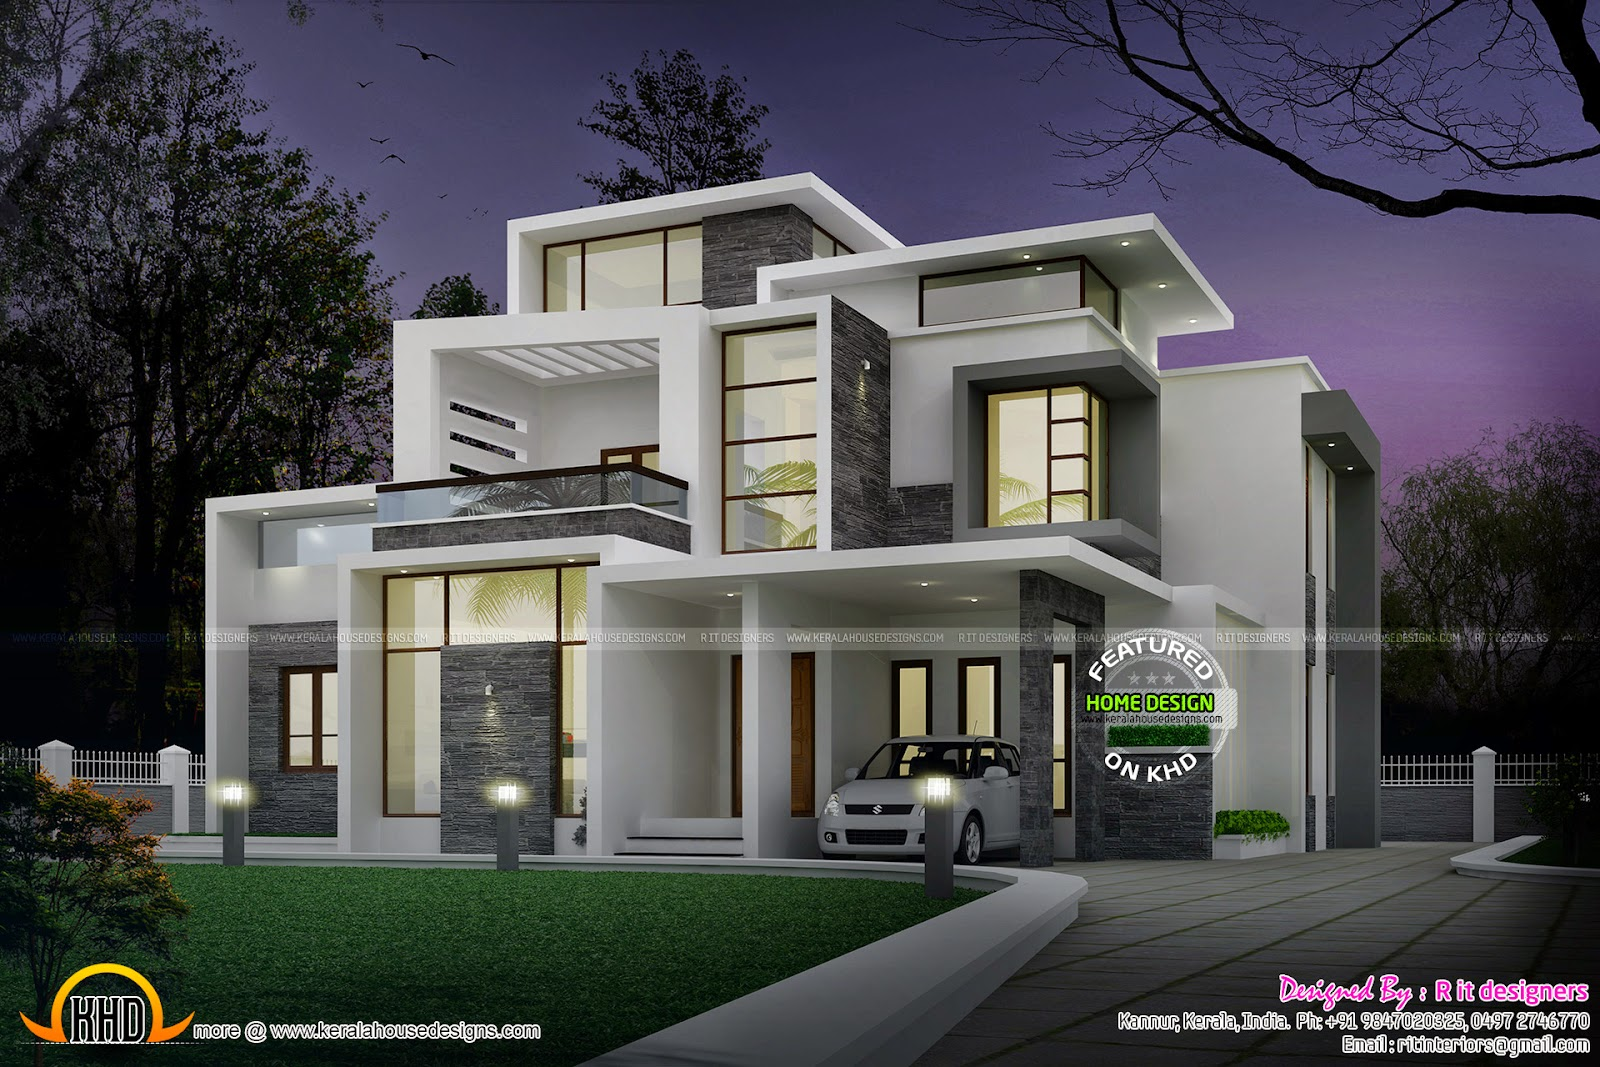 Grand contemporary home design kerala home design and for Modern house plans 2015